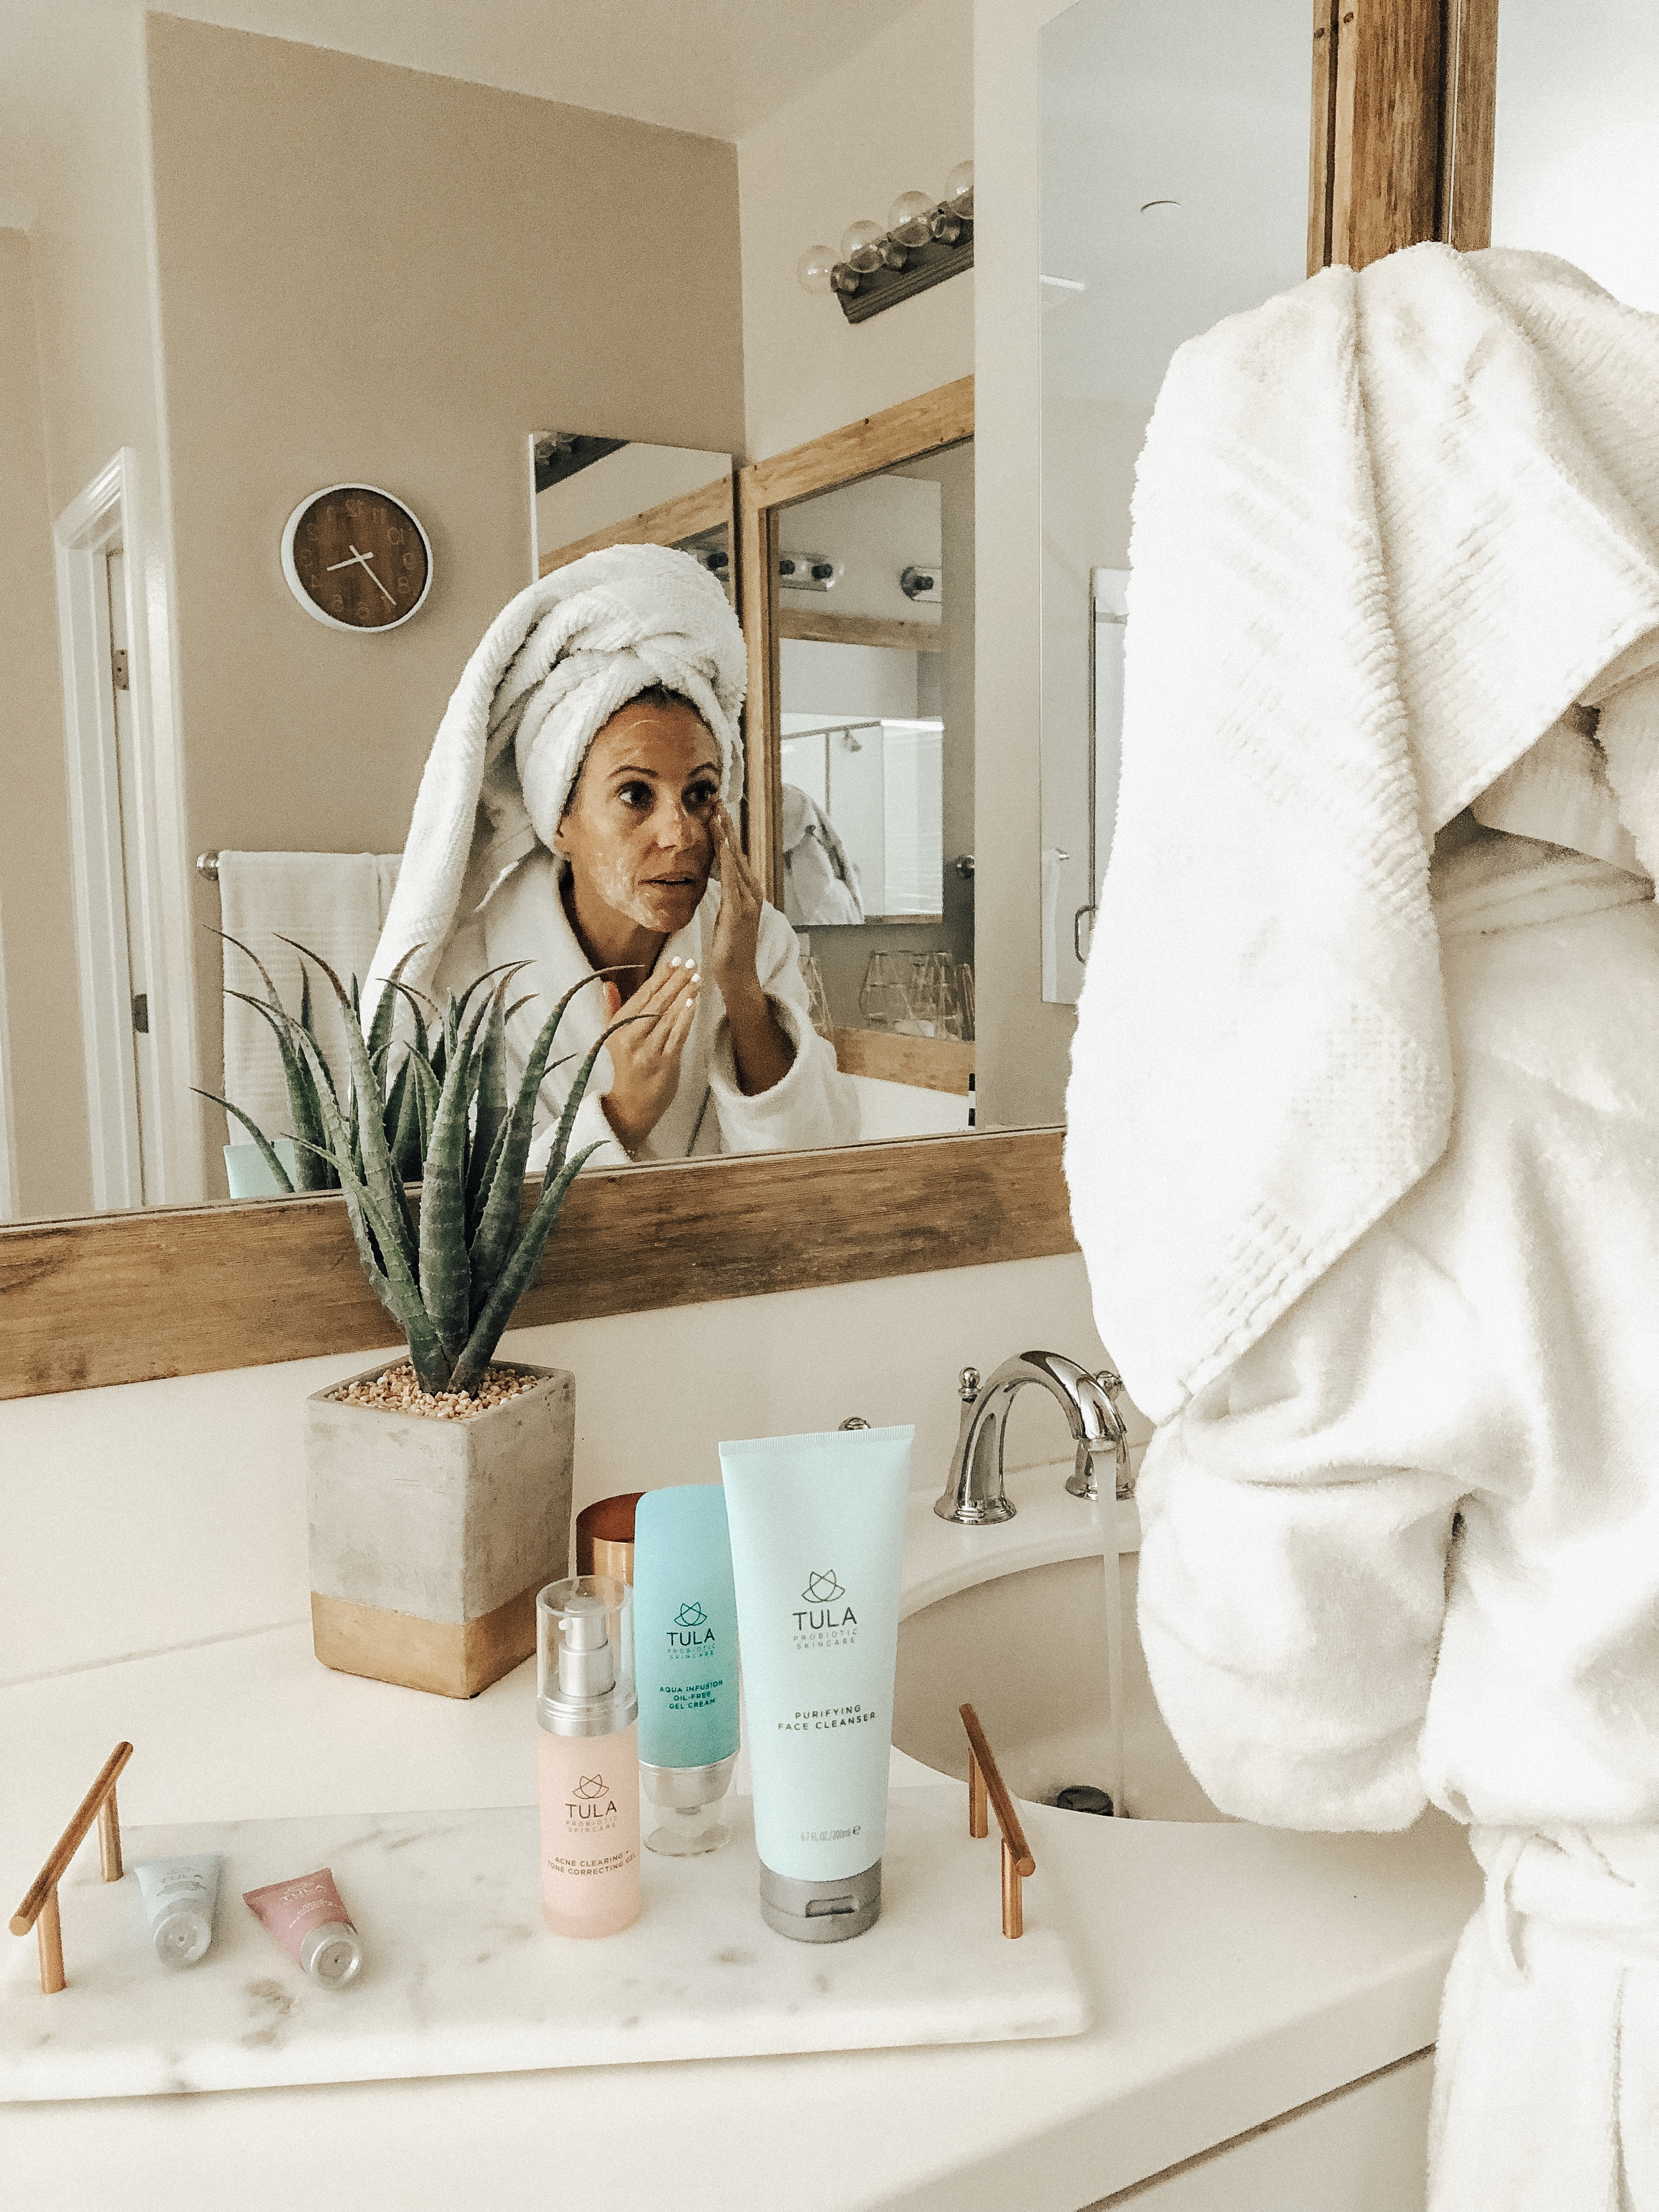 MY SKINCARE ROUTINE WITH TULA- Jaclyn De Leon Style + night time beauty routine + probiotic skincare + acne clearing kit + skin care set + skincare product review + acne regimen + face cleanser + beauty blogger + acne skin treatment routine